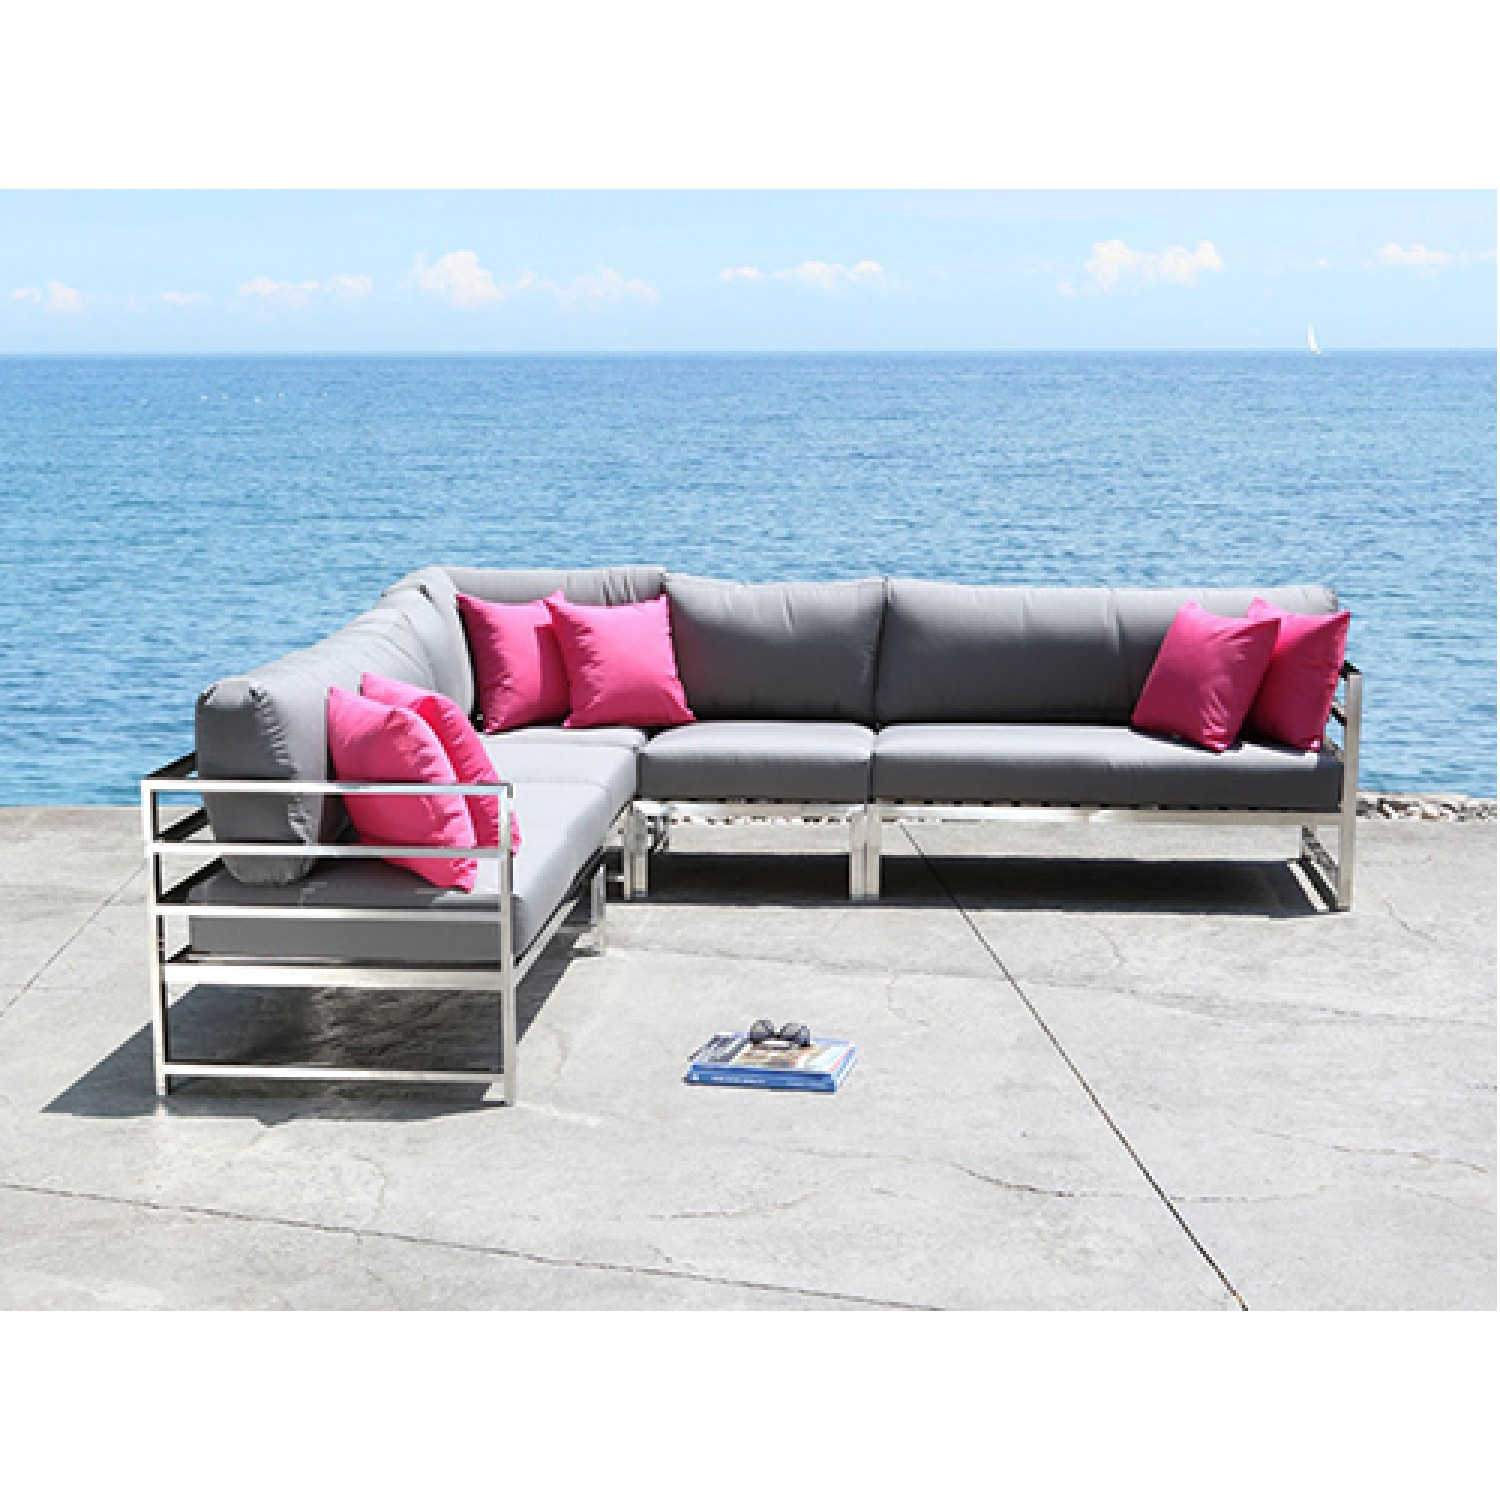 Soho Outdoor Sectional